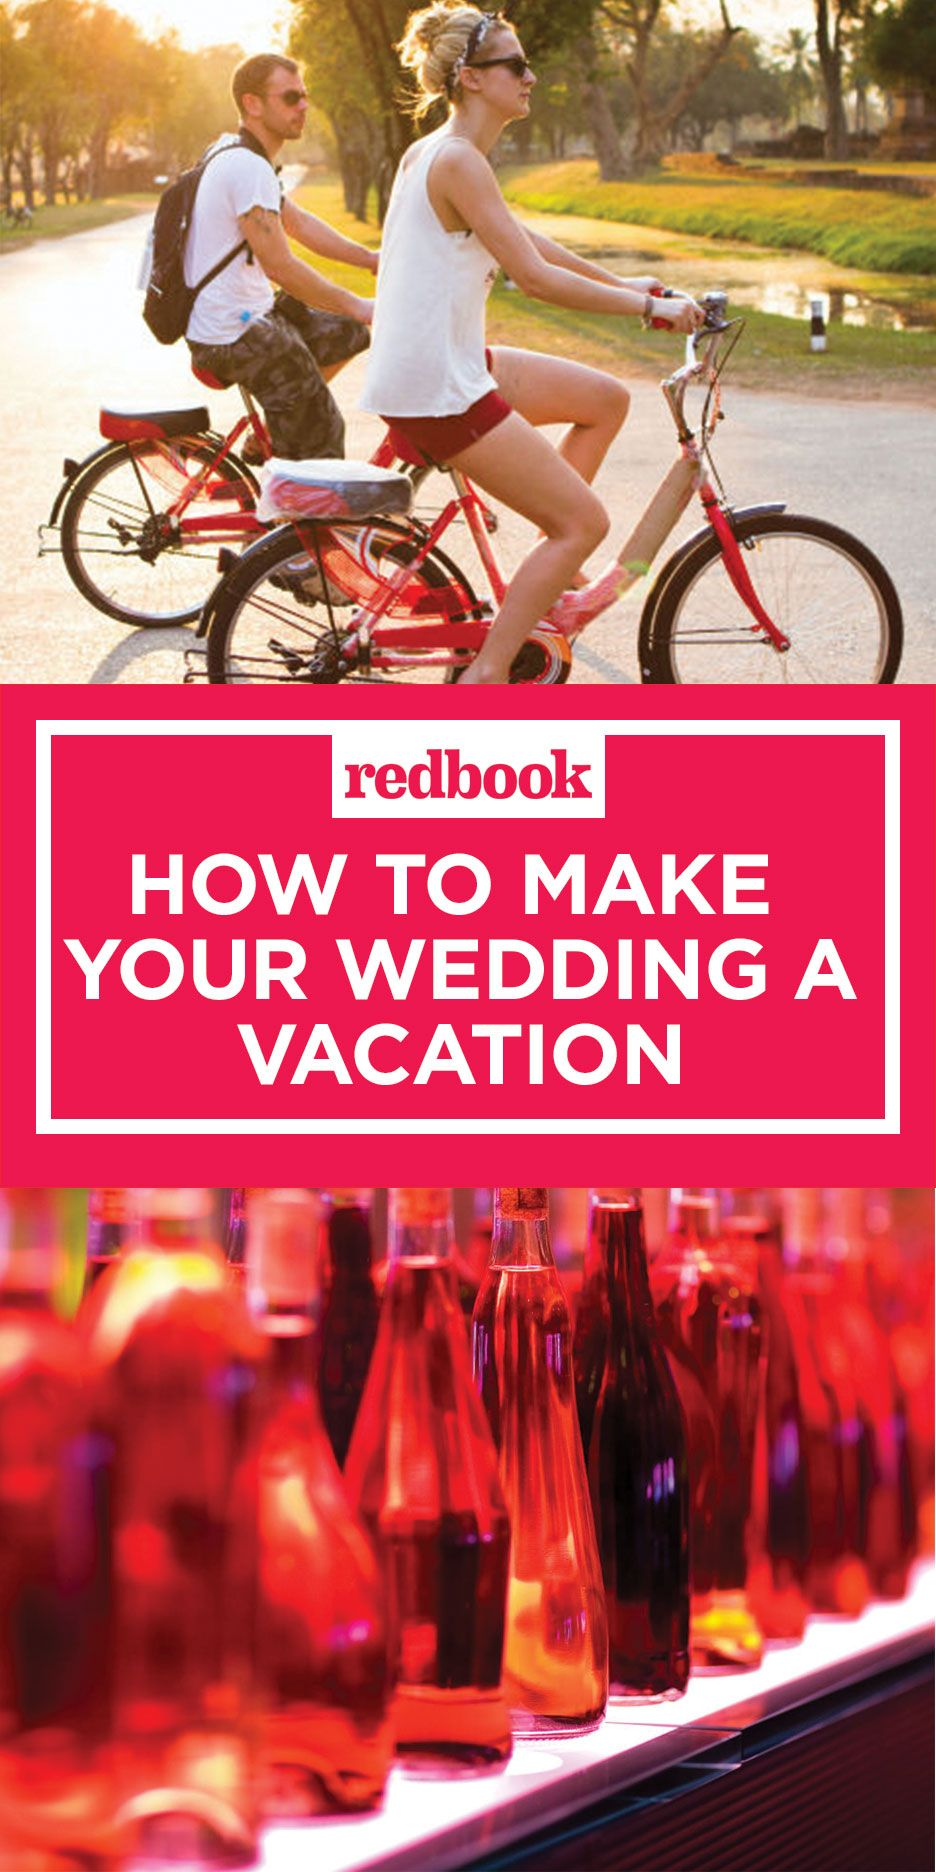 Wedding Planning Advice - How to Make Your Wedding Fun for Guests